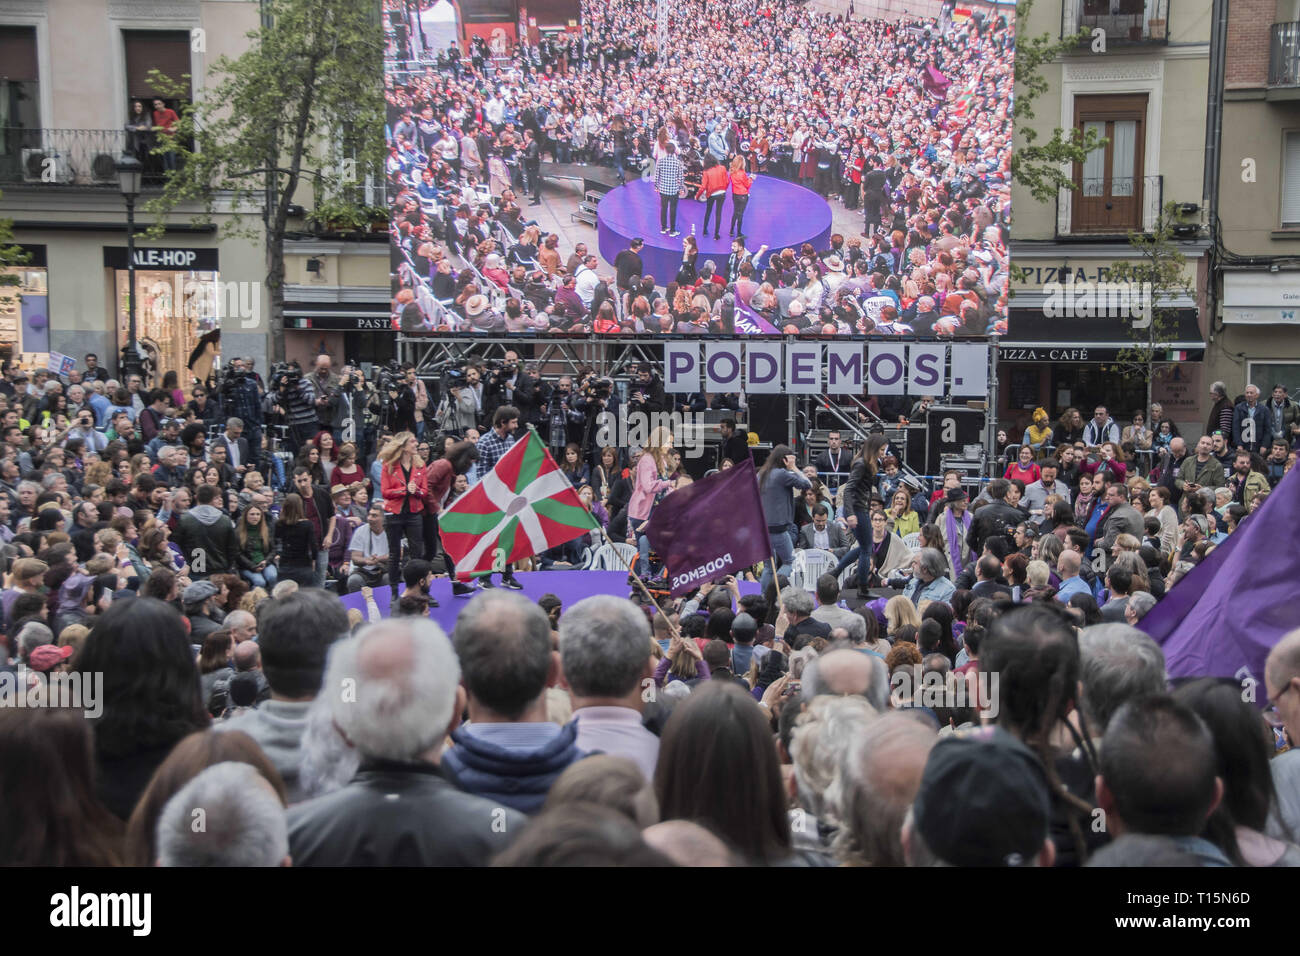 Madrid, Spain. 23rd Mar, 2019. Huge crowd of people seen during the presentation.The left party presentation of the return of paternity permission of Pablo Iglesias at the square attached to the reina sofia de Madrid museum. Pablo Iglesias reappears in the public scene to enjoy the paternity leave. Credit: Alberto Sibaja/SOPA Images/ZUMA Wire/Alamy Live News - Stock Image